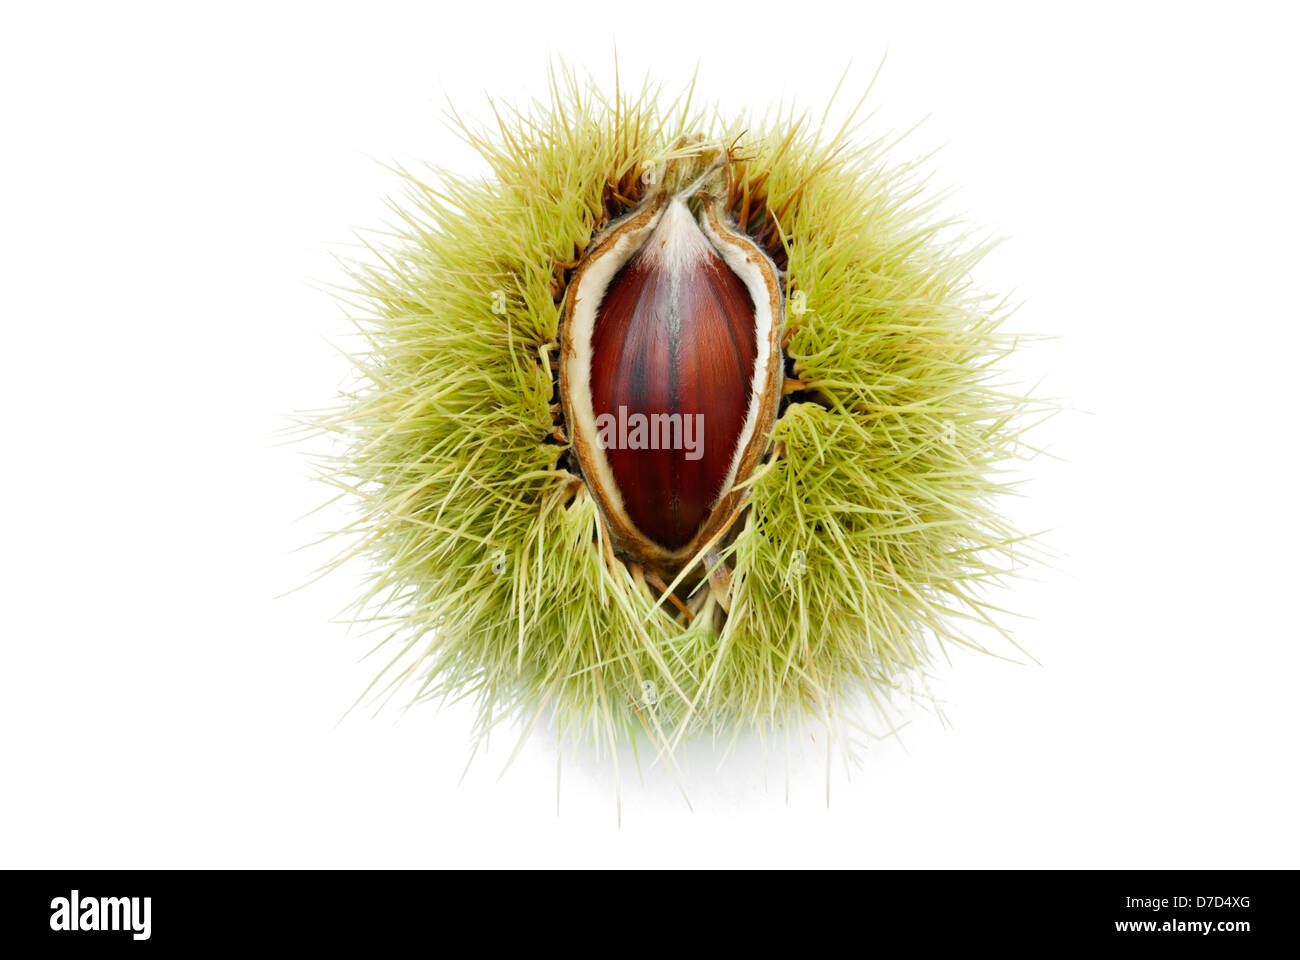 chestnut pops up through its half opened husk - Stock Image